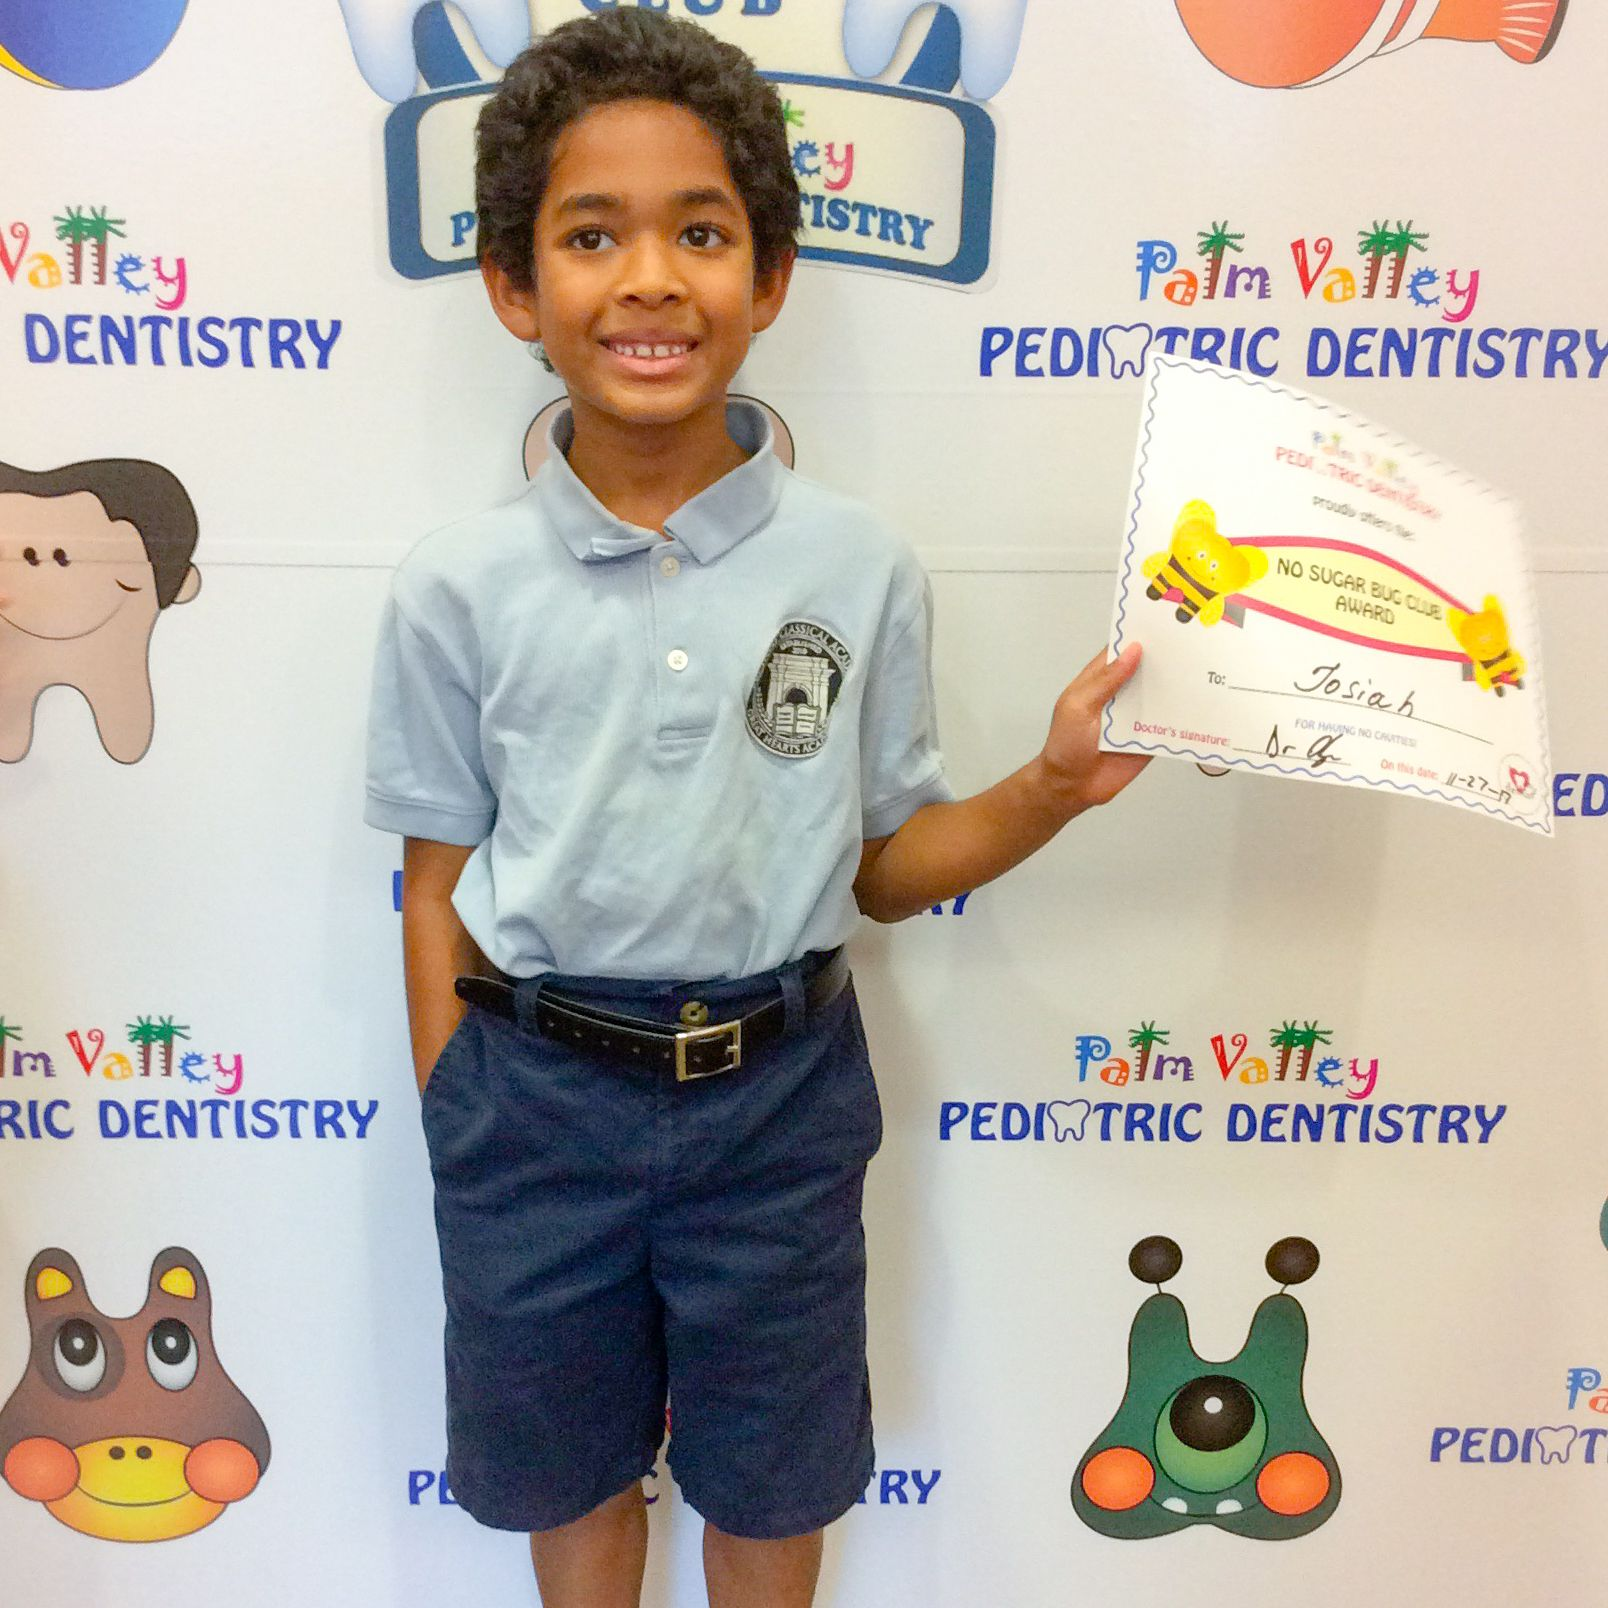 Our team loves making dentistry fun for our young patients